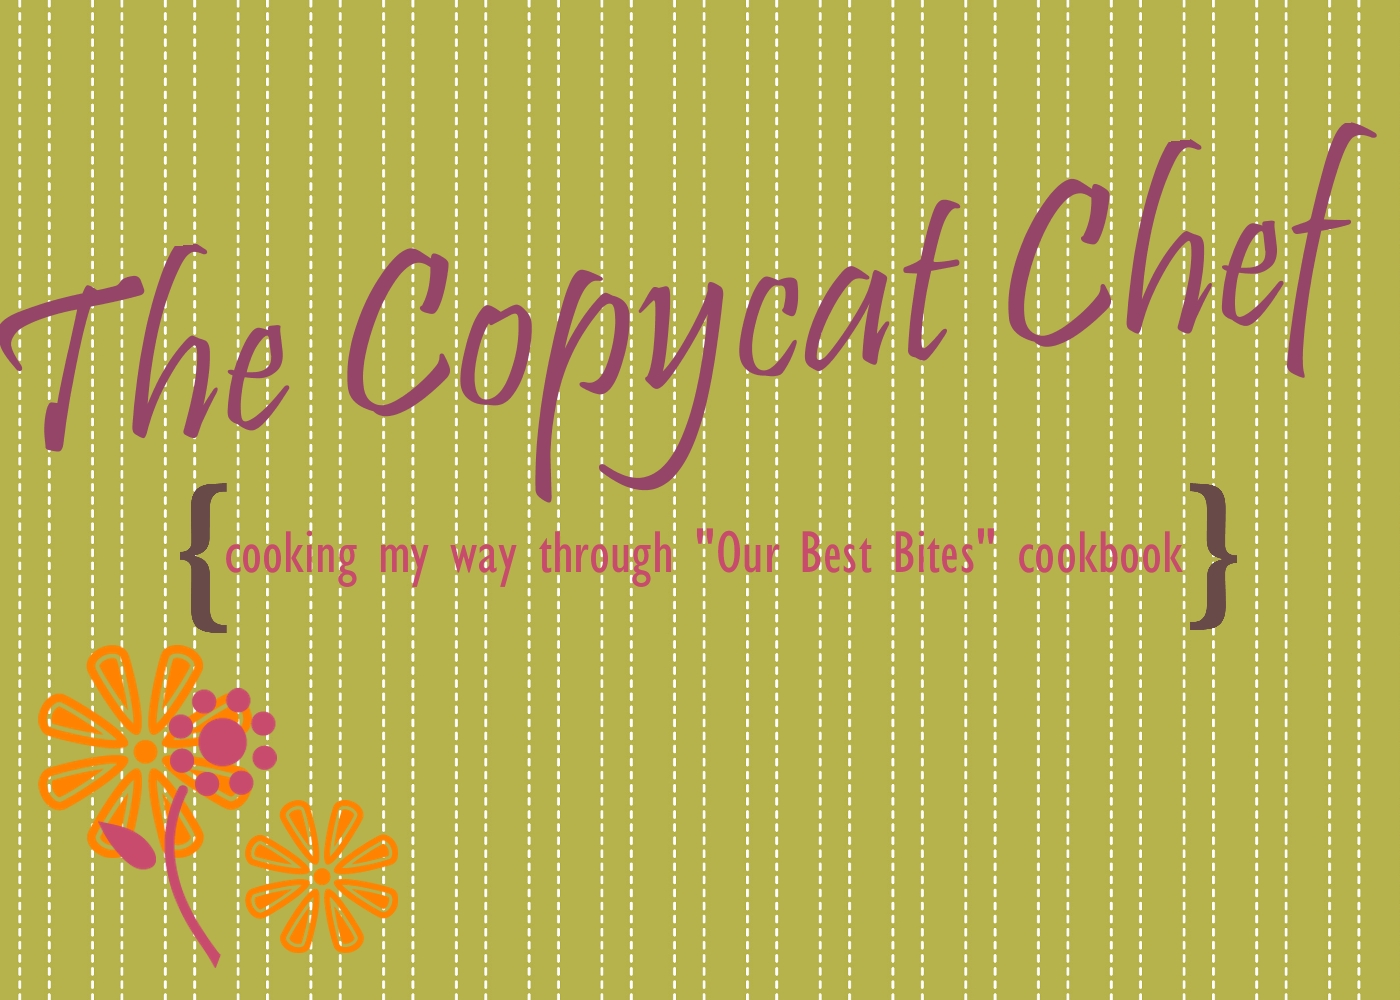 The Copycat Chef